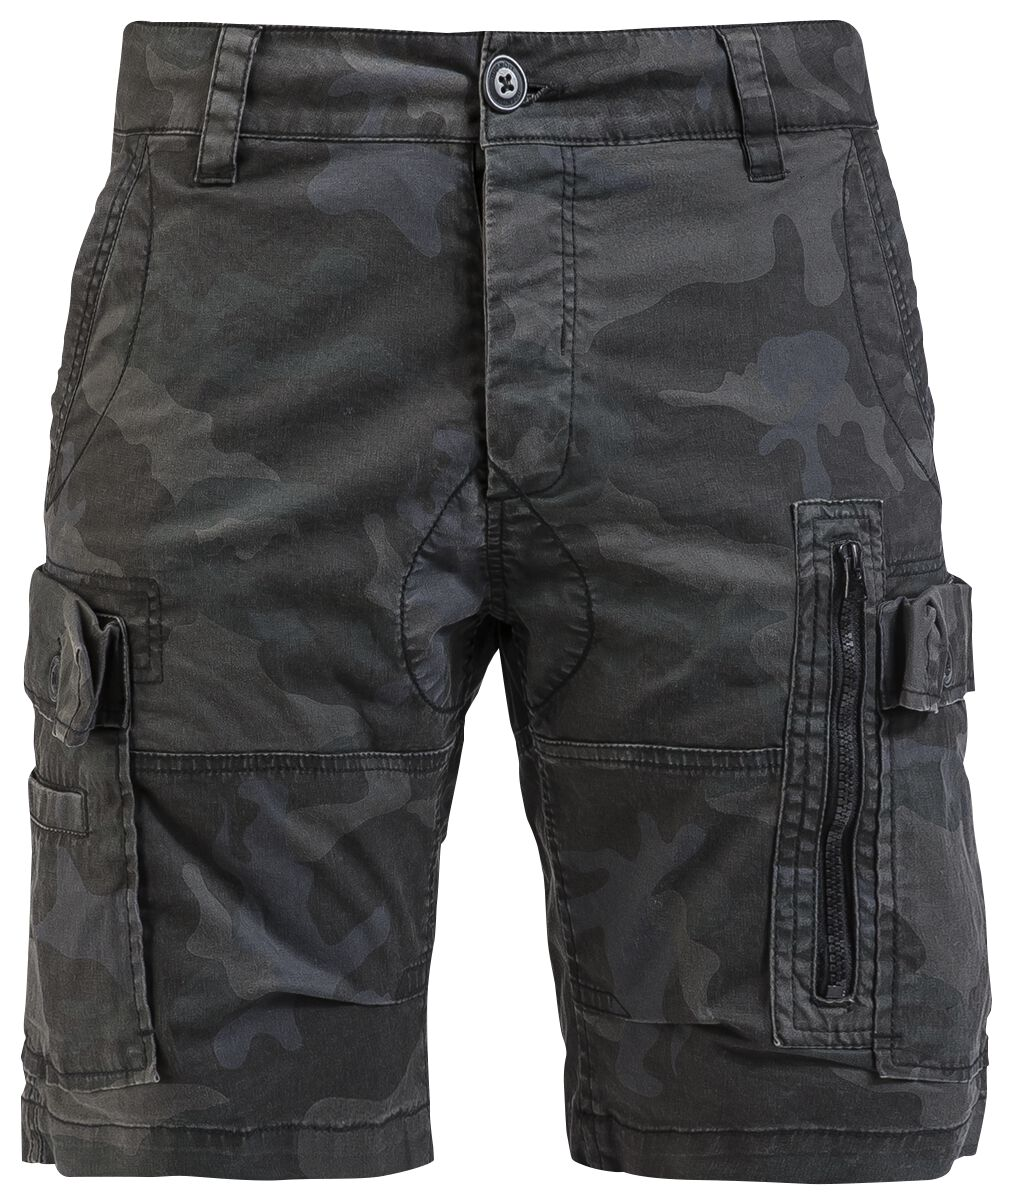 Image of   Brandit Kite Short Slim Fit Shorts mørk camo